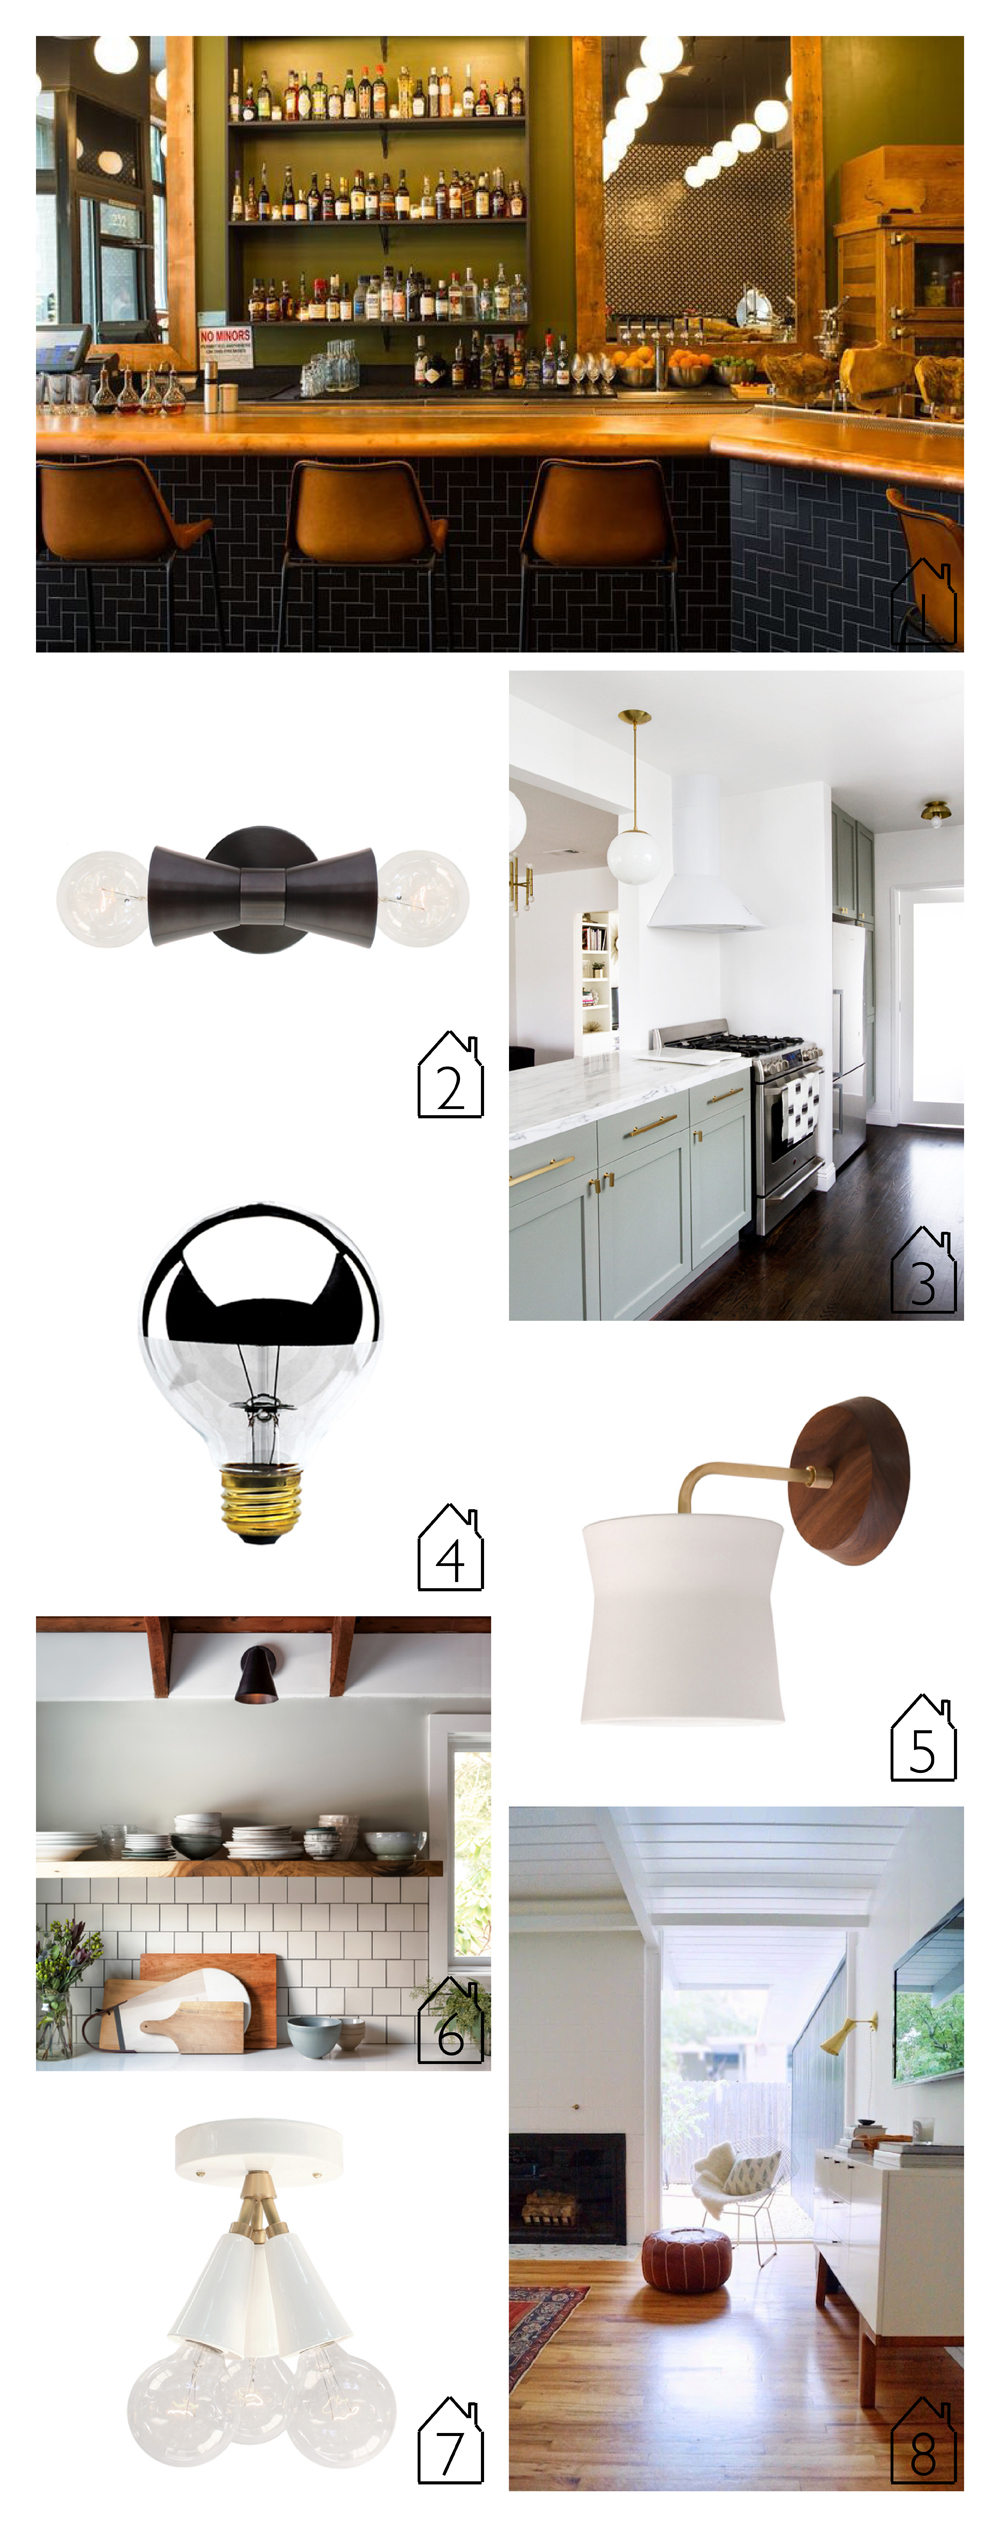 1.  Alto  light in  Oven and Shaker  restaurant via Eater  2.  Mira  light  3.  Smitten Studio  kitchen with  Alto  and  Lucia  light  4.  G25 Silver Bulb   5.  Wyatt Sconce   6.   Tilt Cone  sconce  7.  Spectra  light  8.  Tryon  sconce via  Grey and Scout